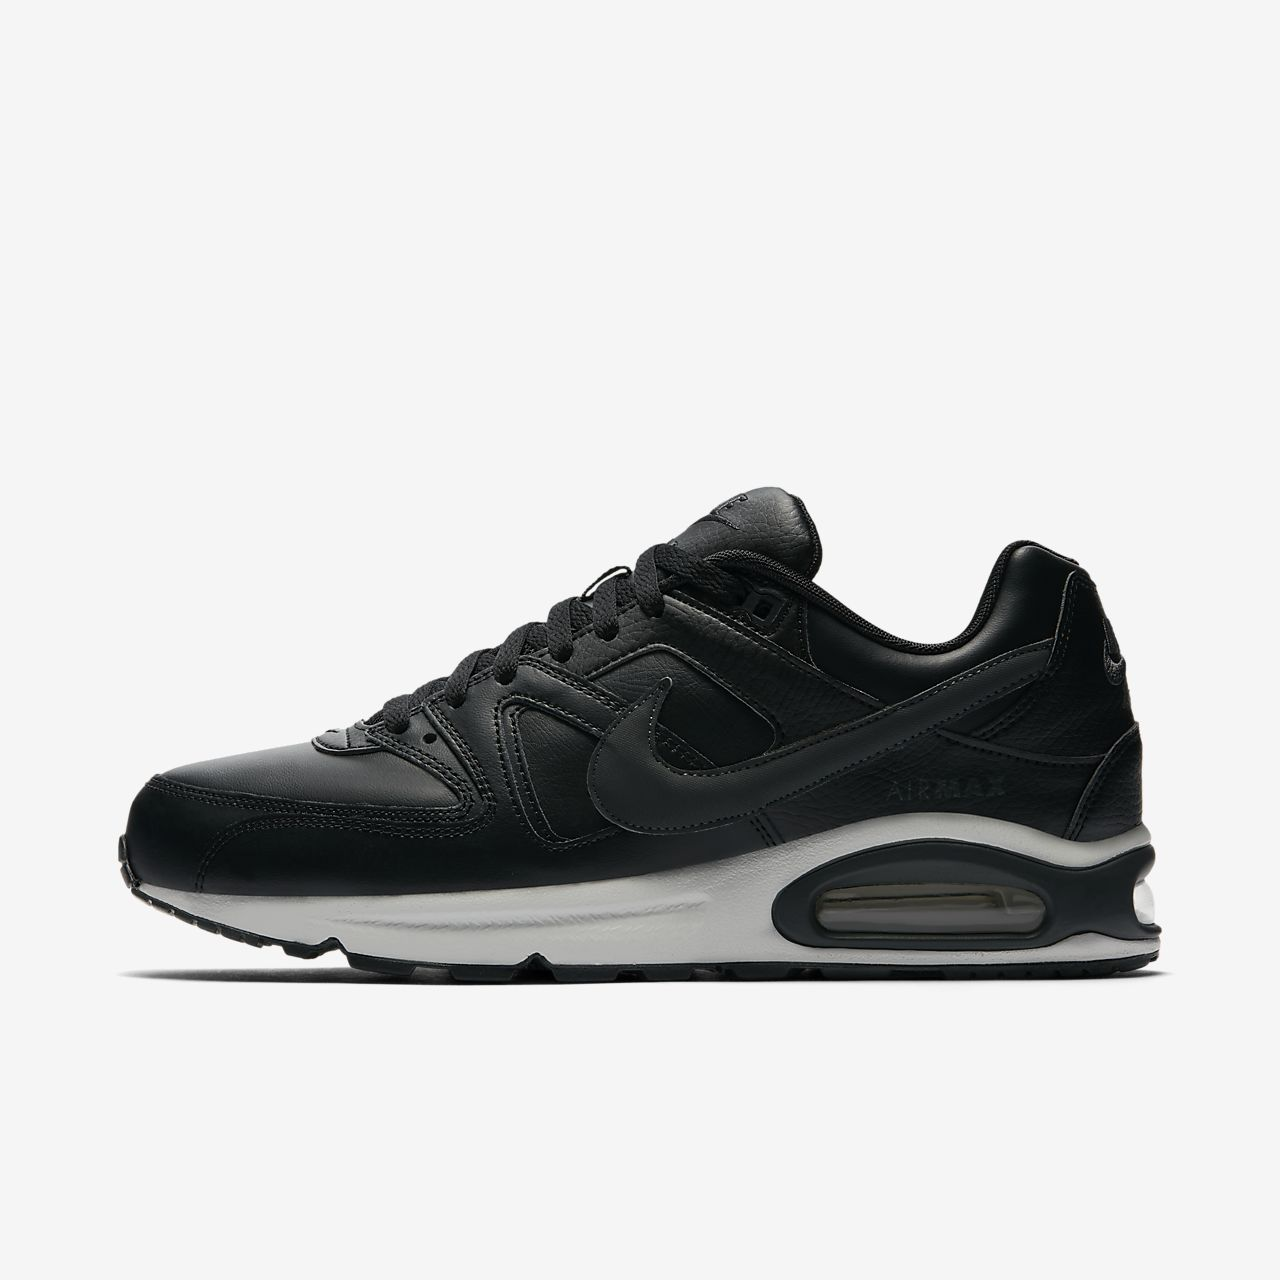 nike air max command blå, Billig Nike Air Max 1 Em Herre Sko